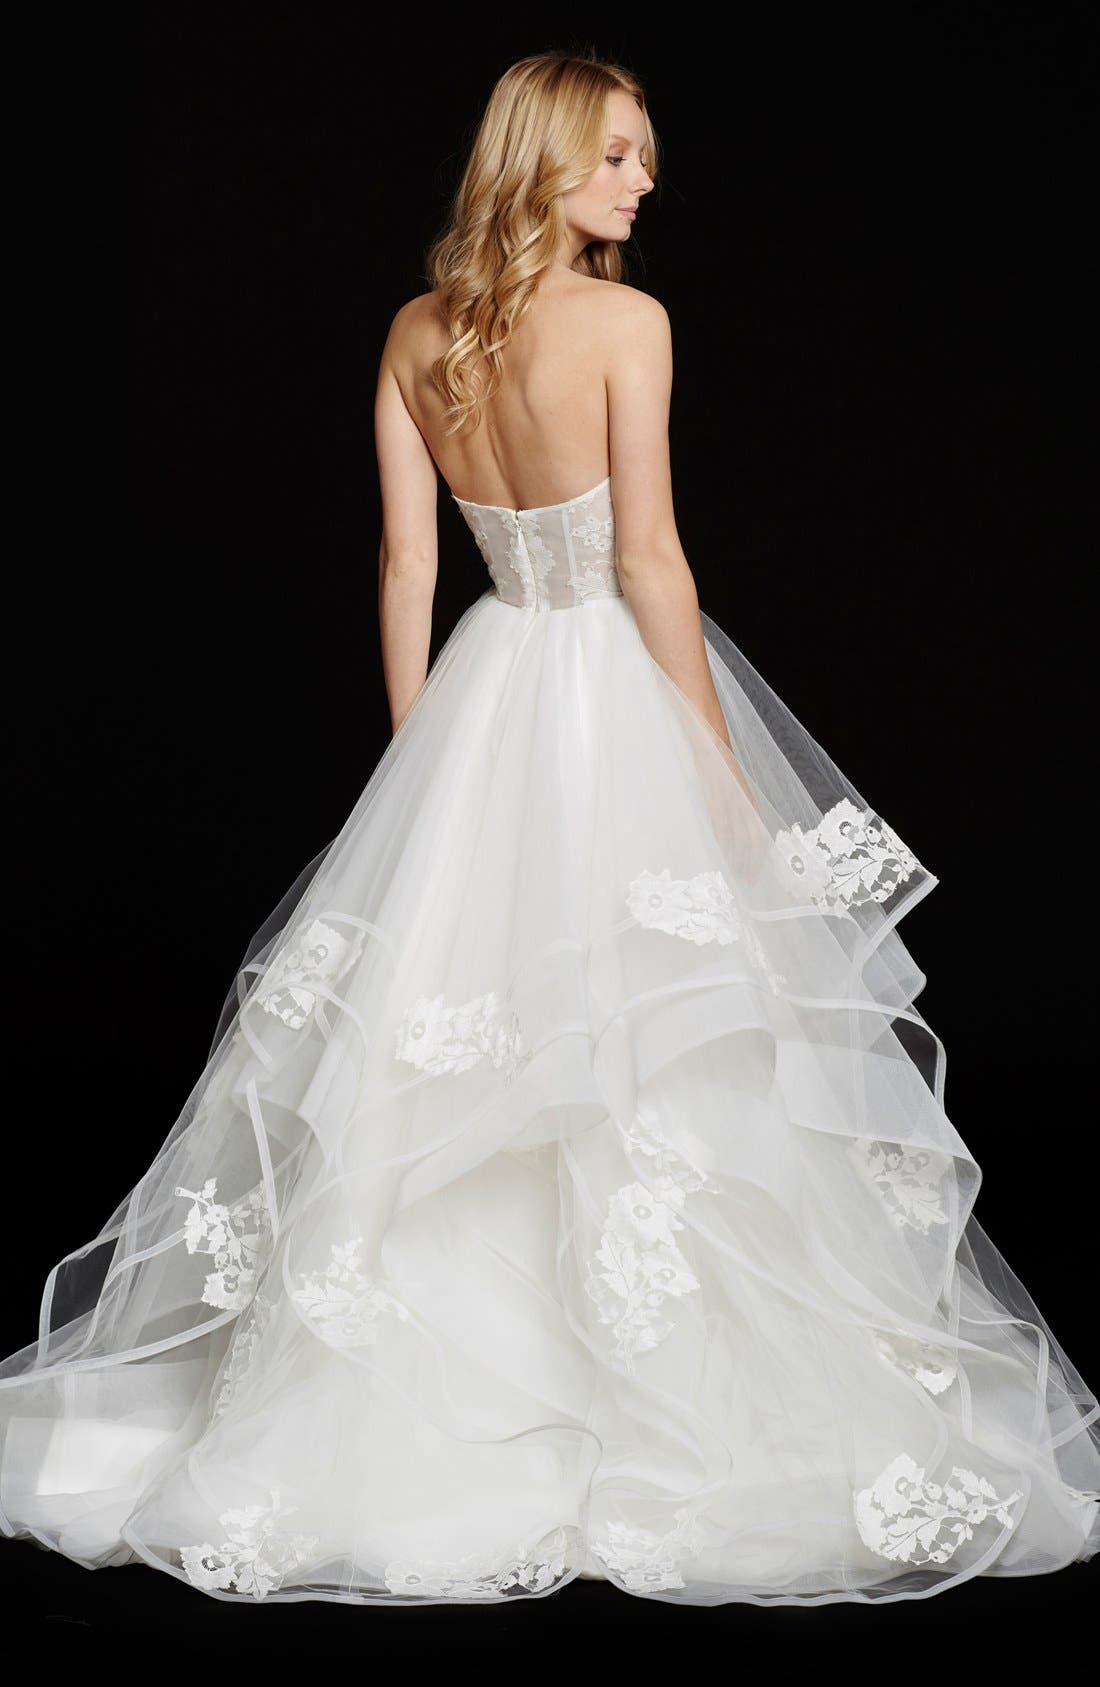 Chantelle Strapless Lace & Tulle Ballgown,                             Alternate thumbnail 2, color,                             IVORY